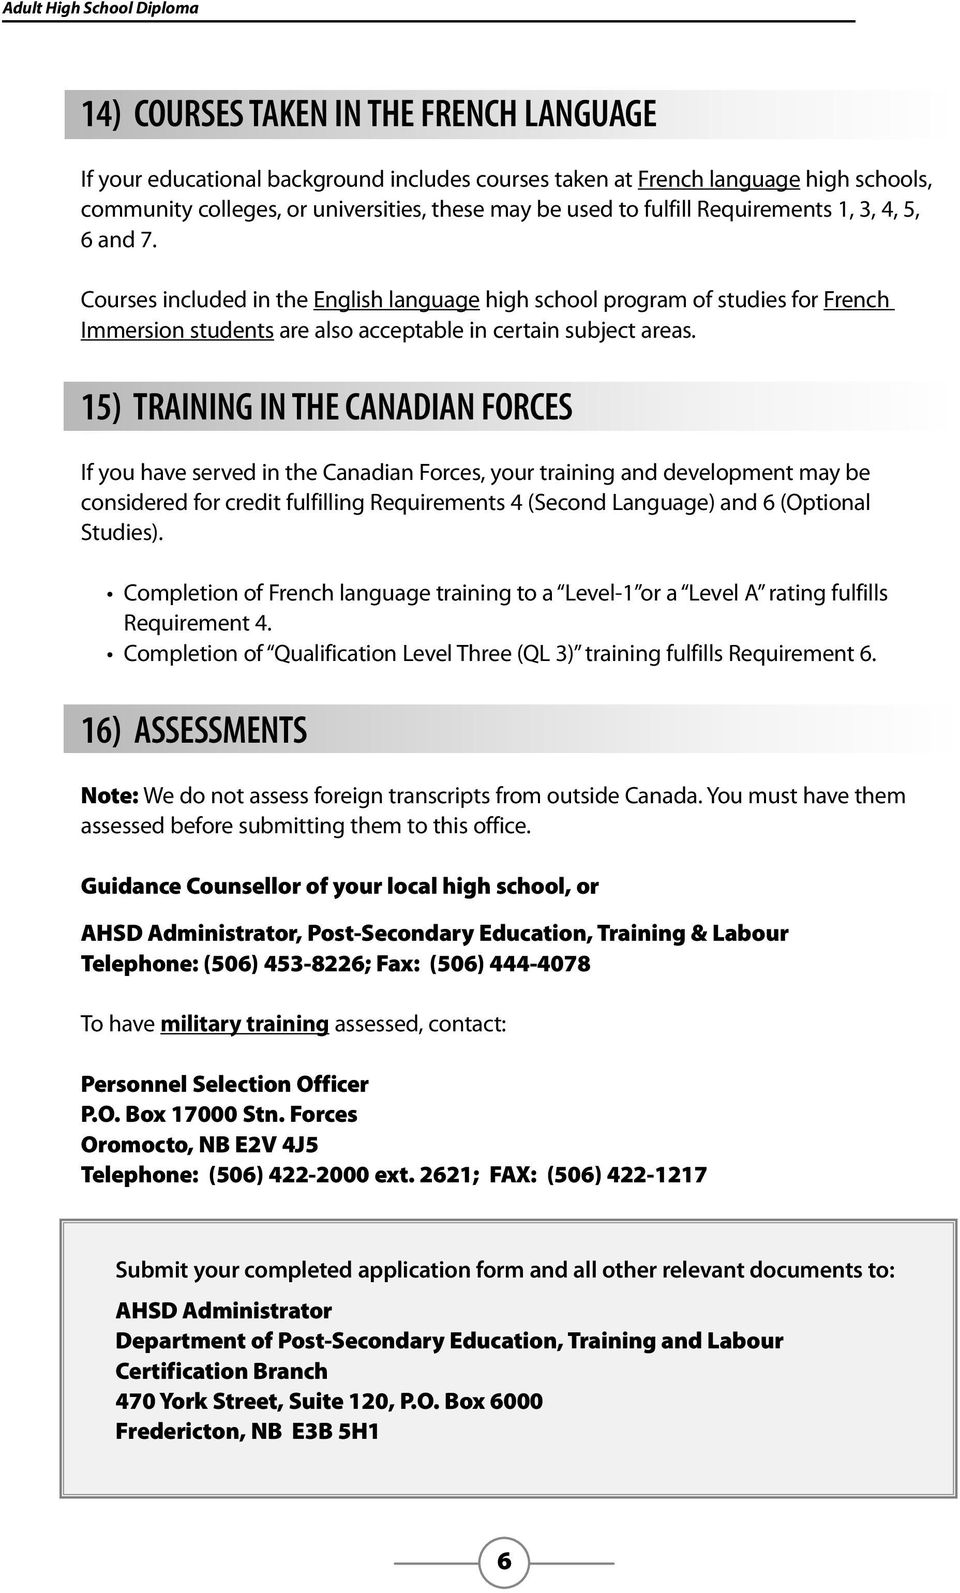 15) TRAINING IN THE CANADIAN FORCES If you have served in the Canadian Forces, your training and development may be considered for credit fulfilling Requirements 4 (Second Language) and 6 (Optional